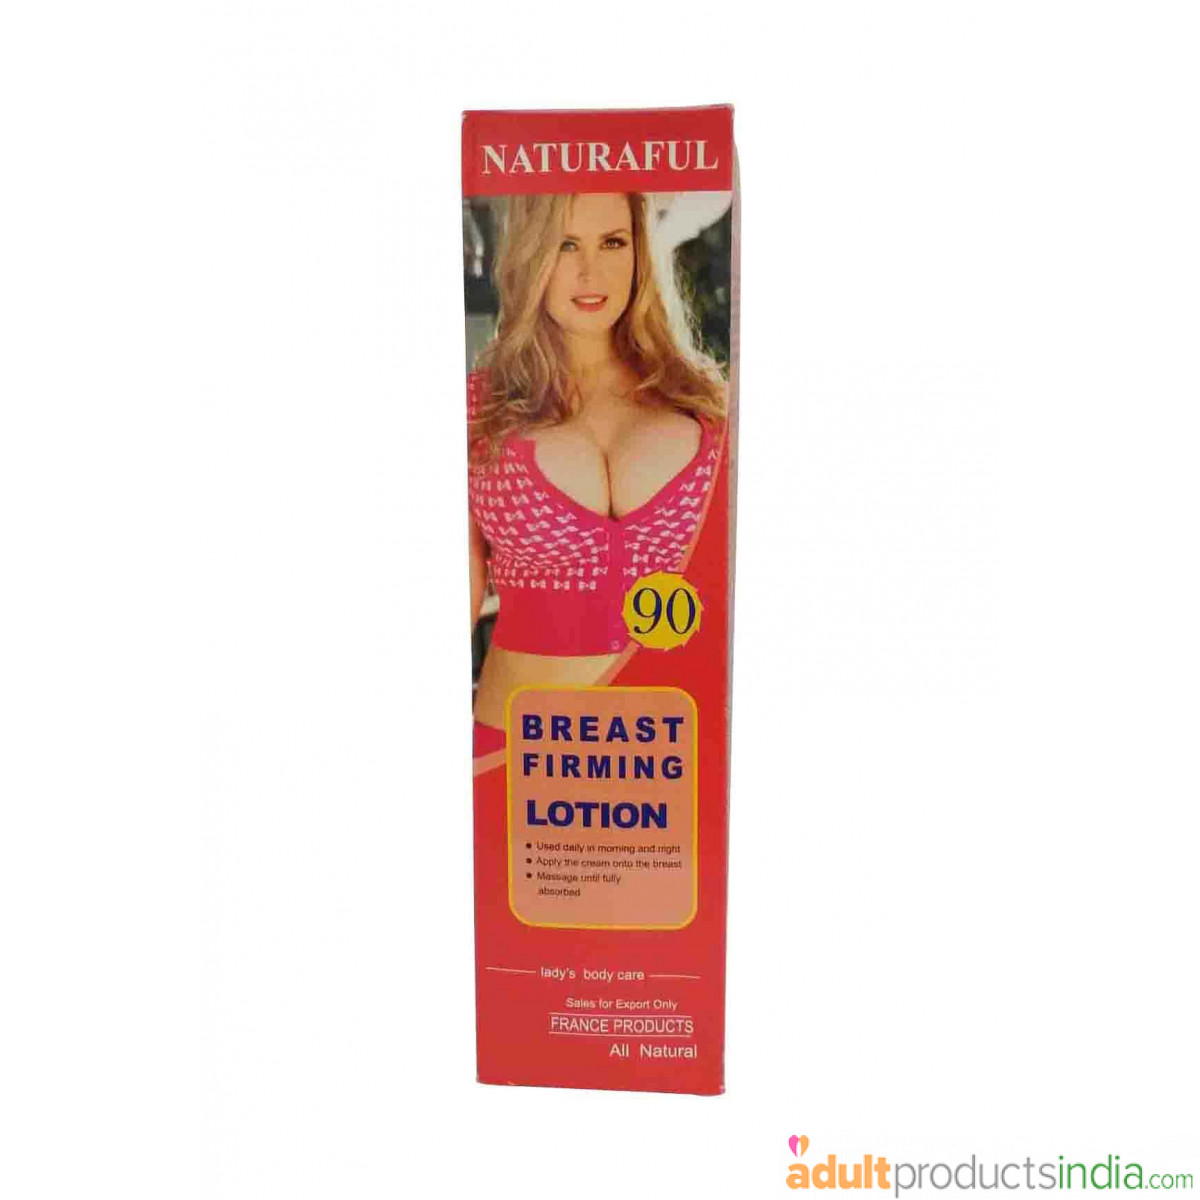 Breast Firming Lotion